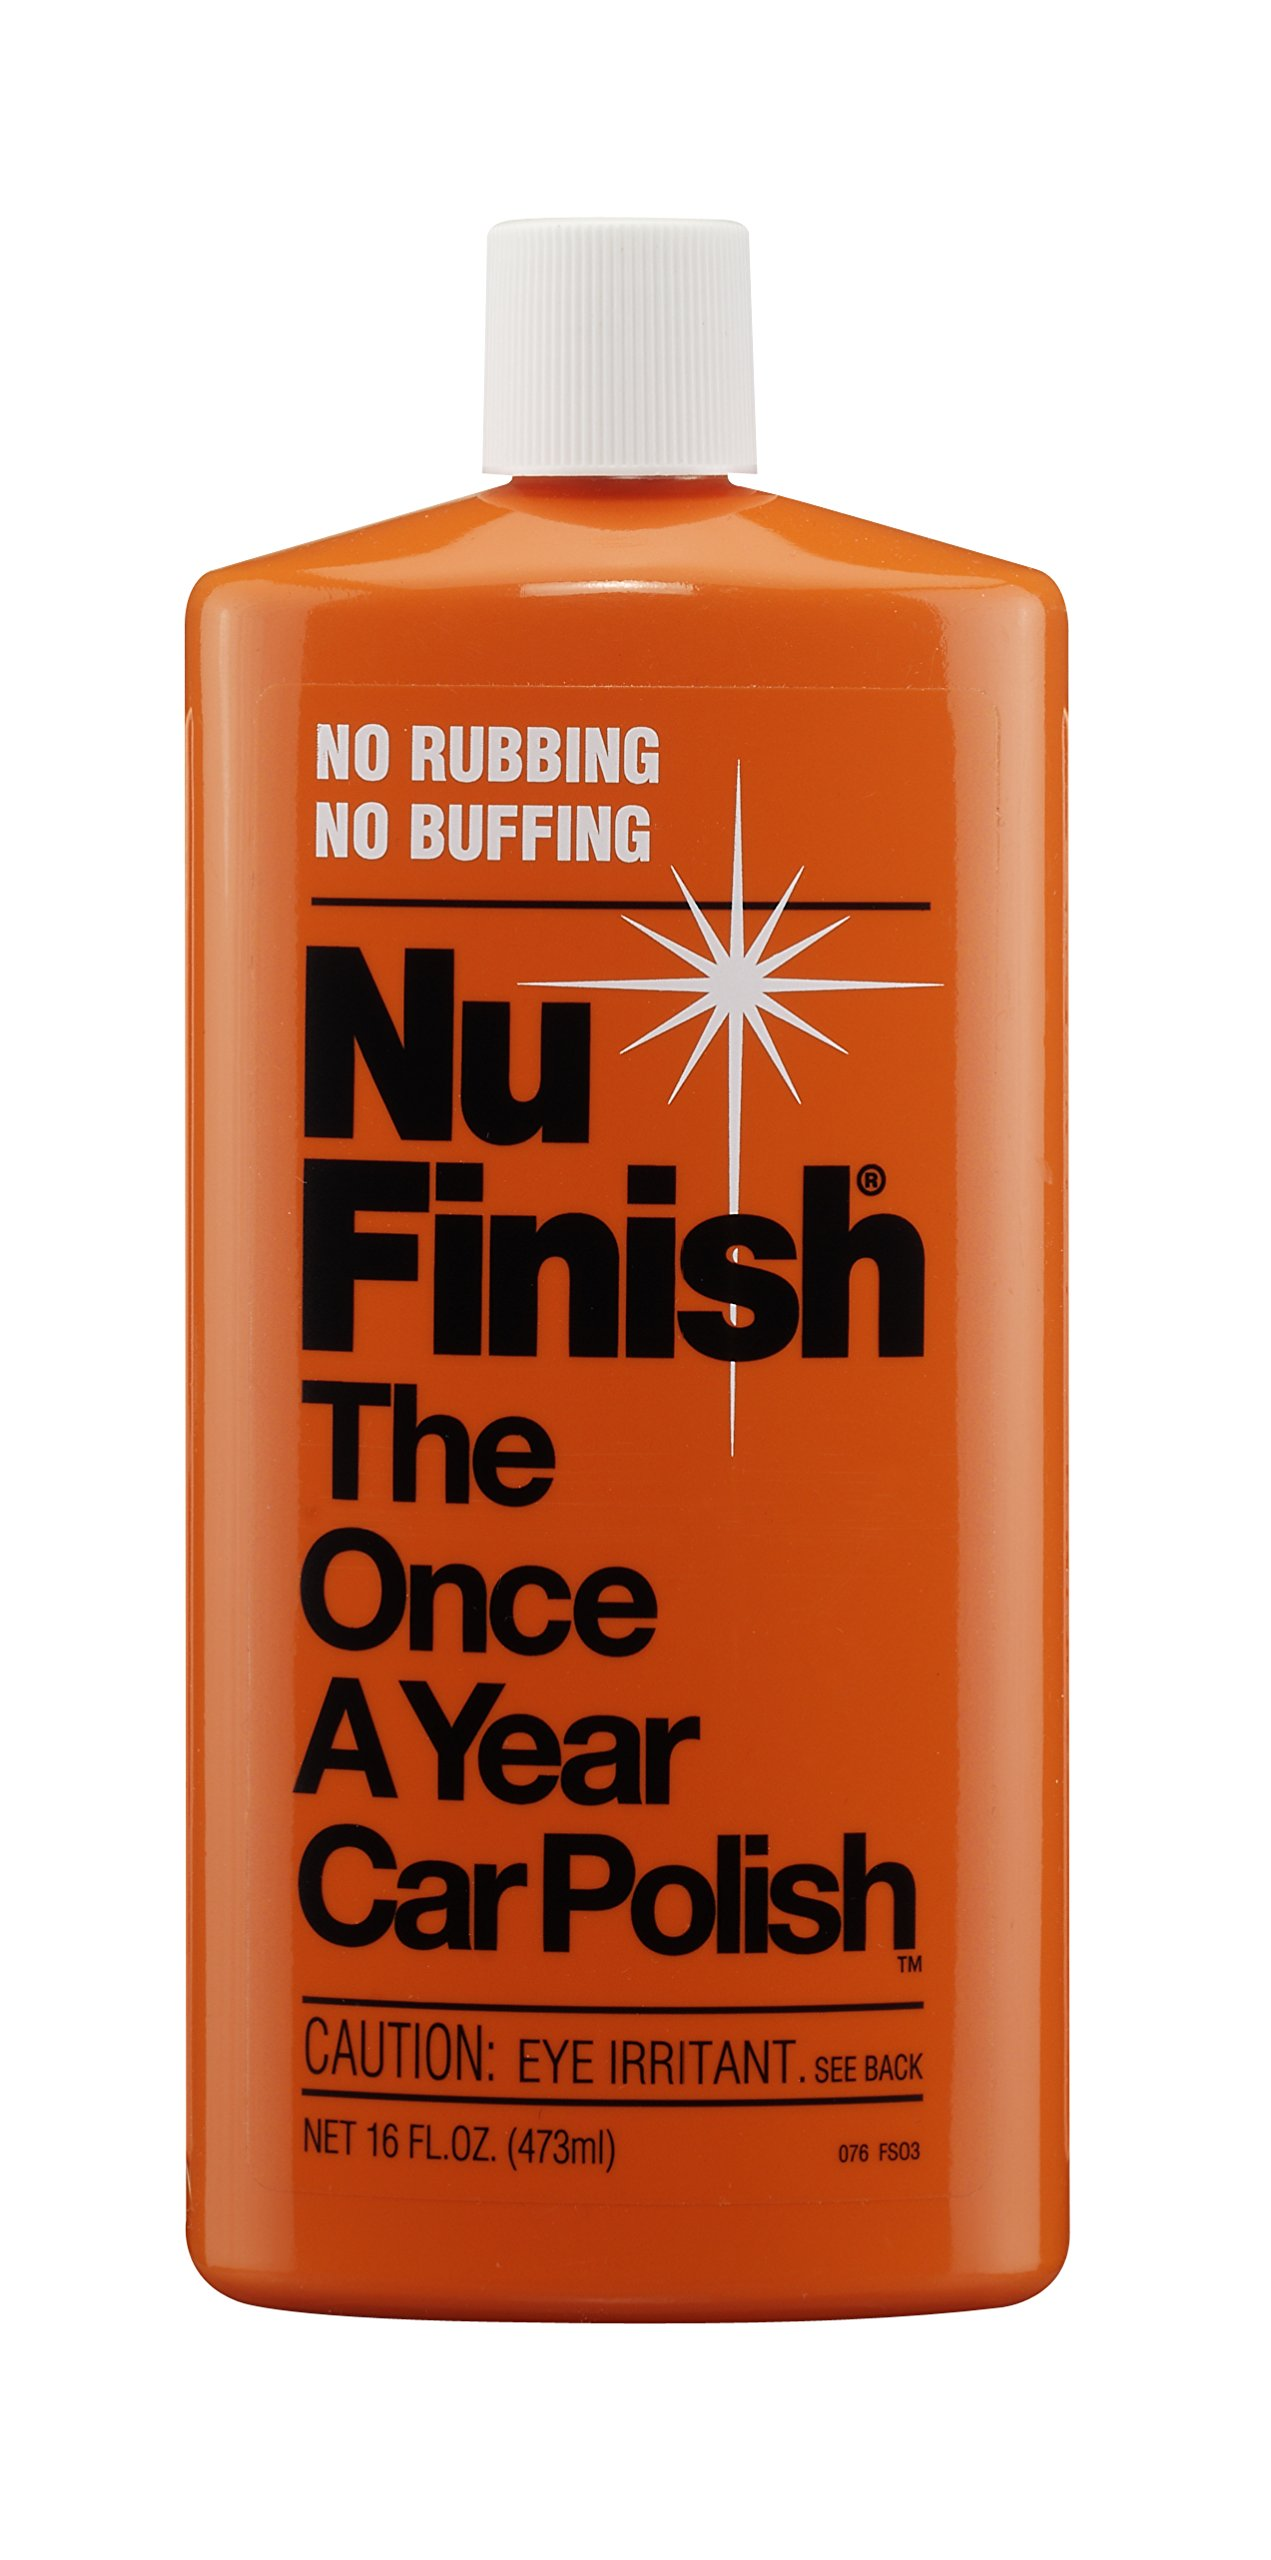 nu-finish-liquid-car-polish-best-car-clean-wash-products-reviews